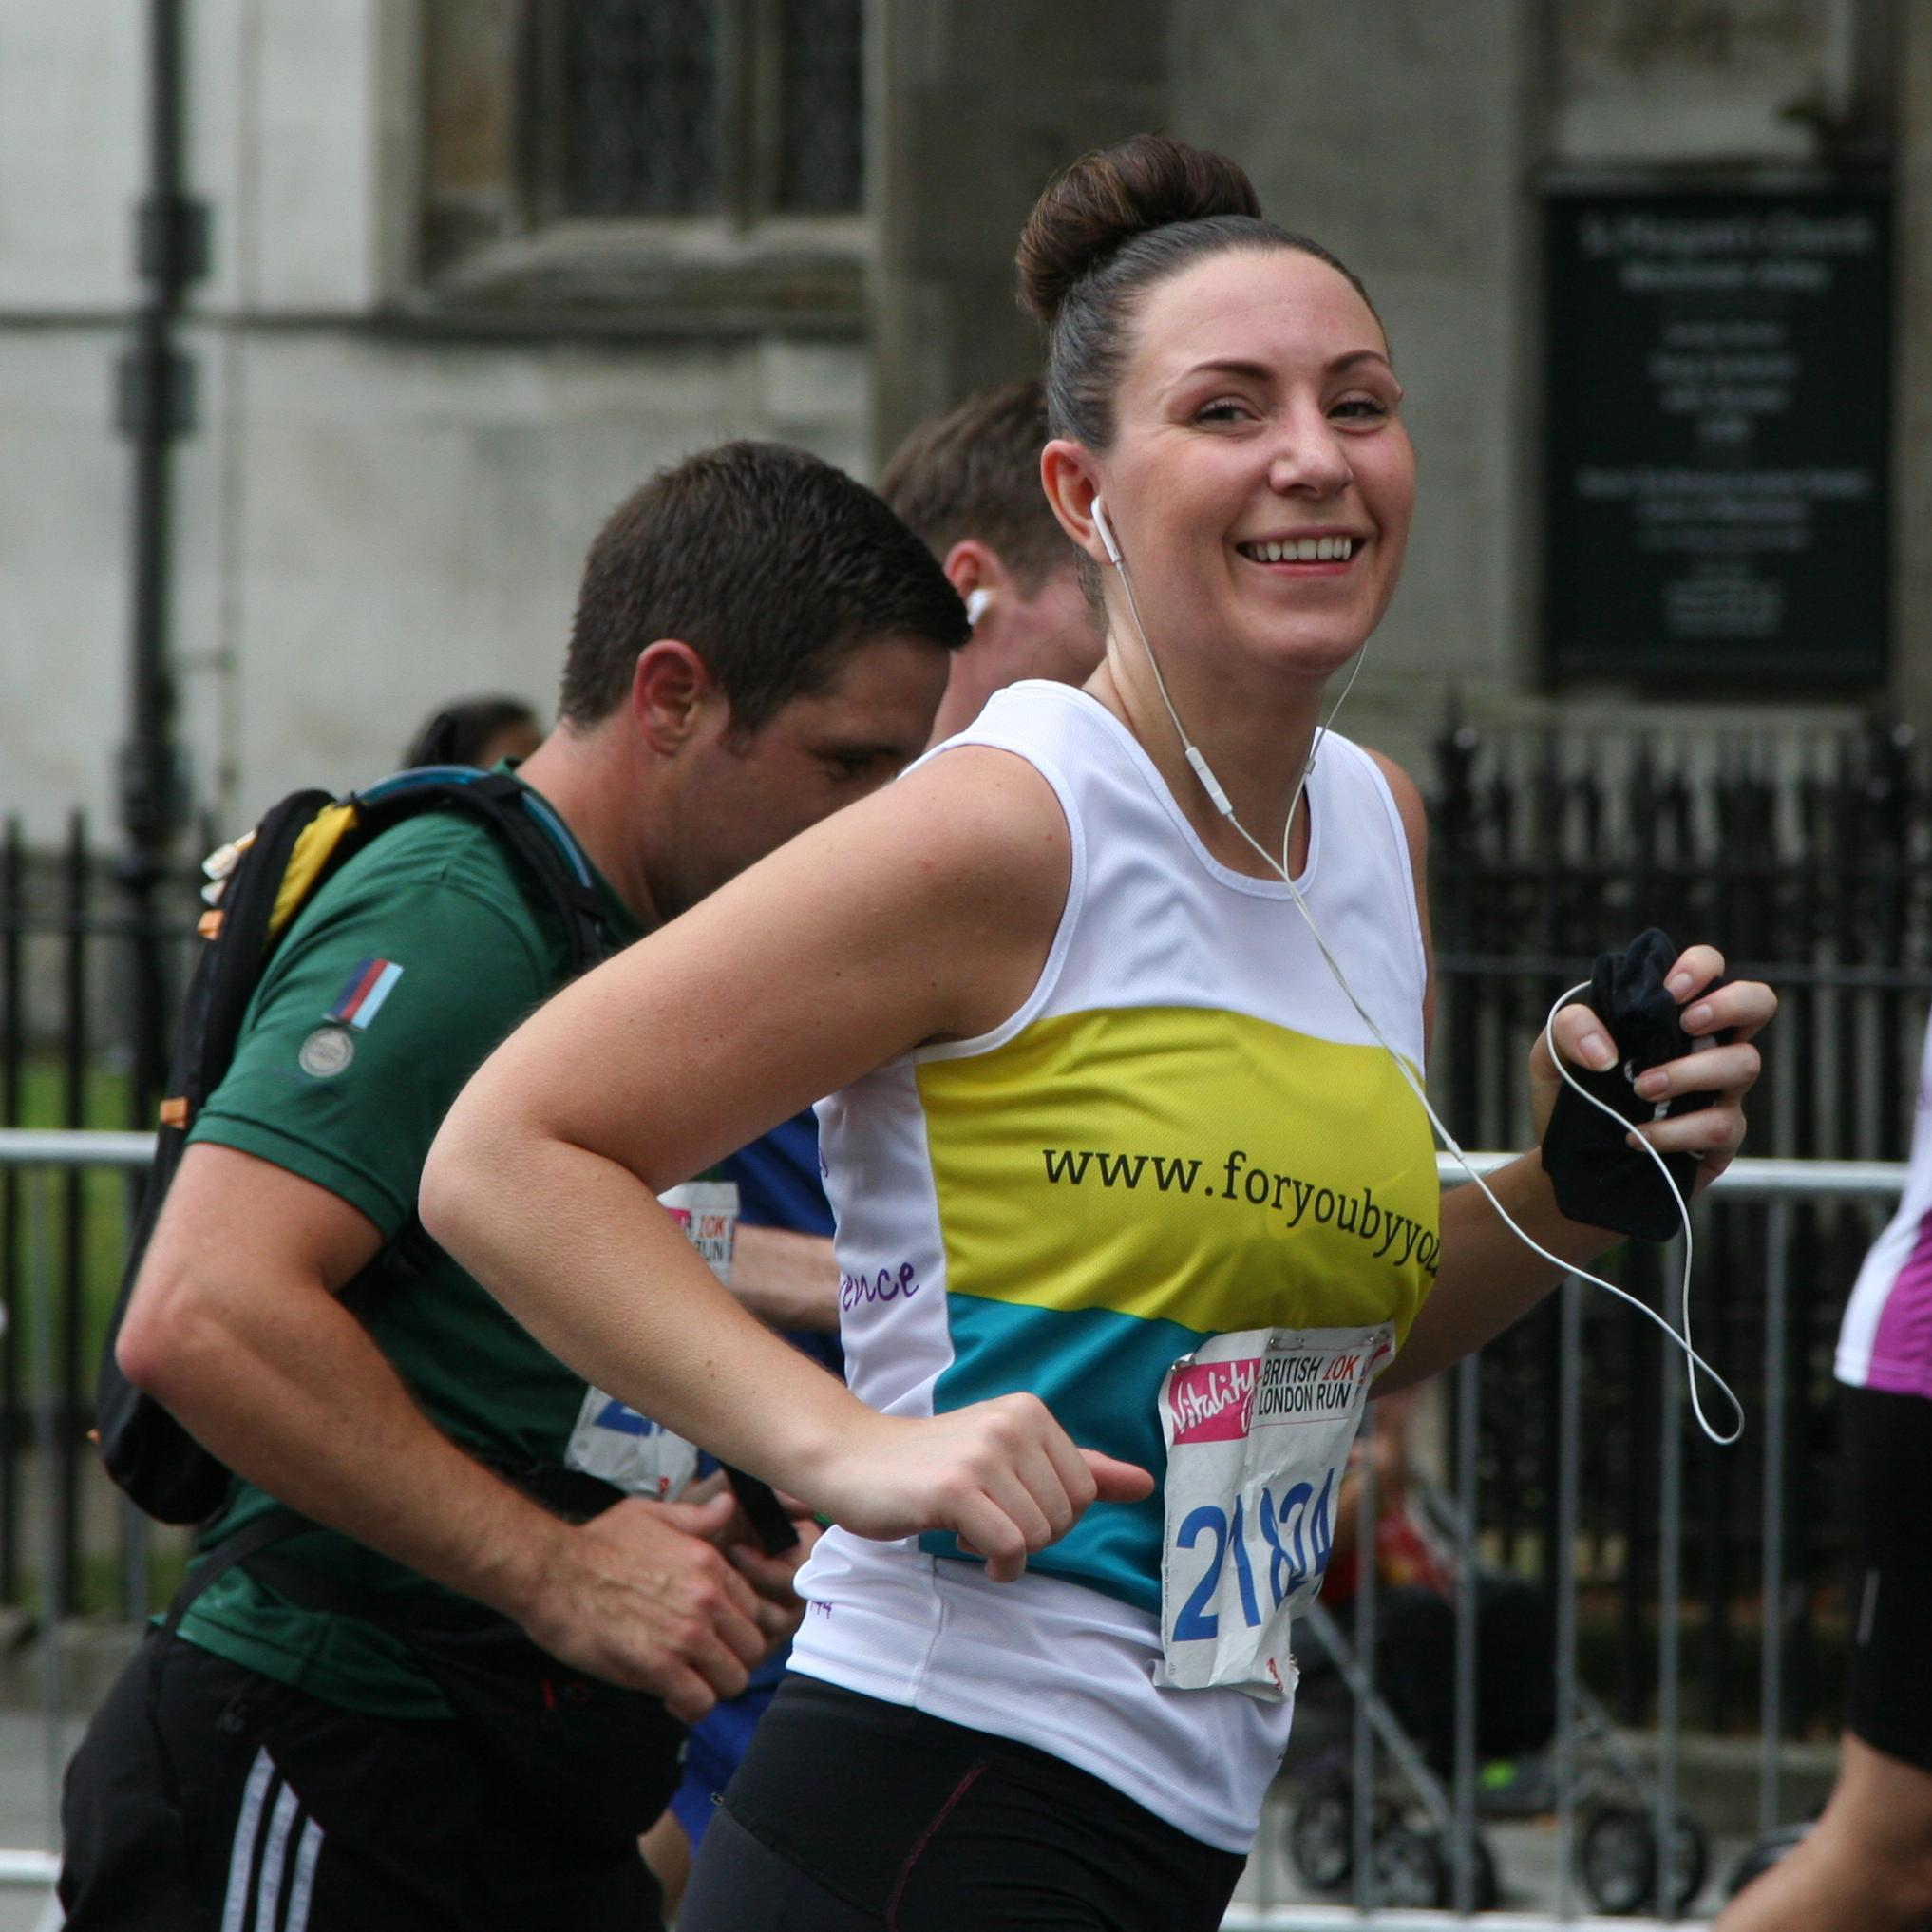 Nicola Jollife runs the British 10k in the Charity for Civil Servants running vest